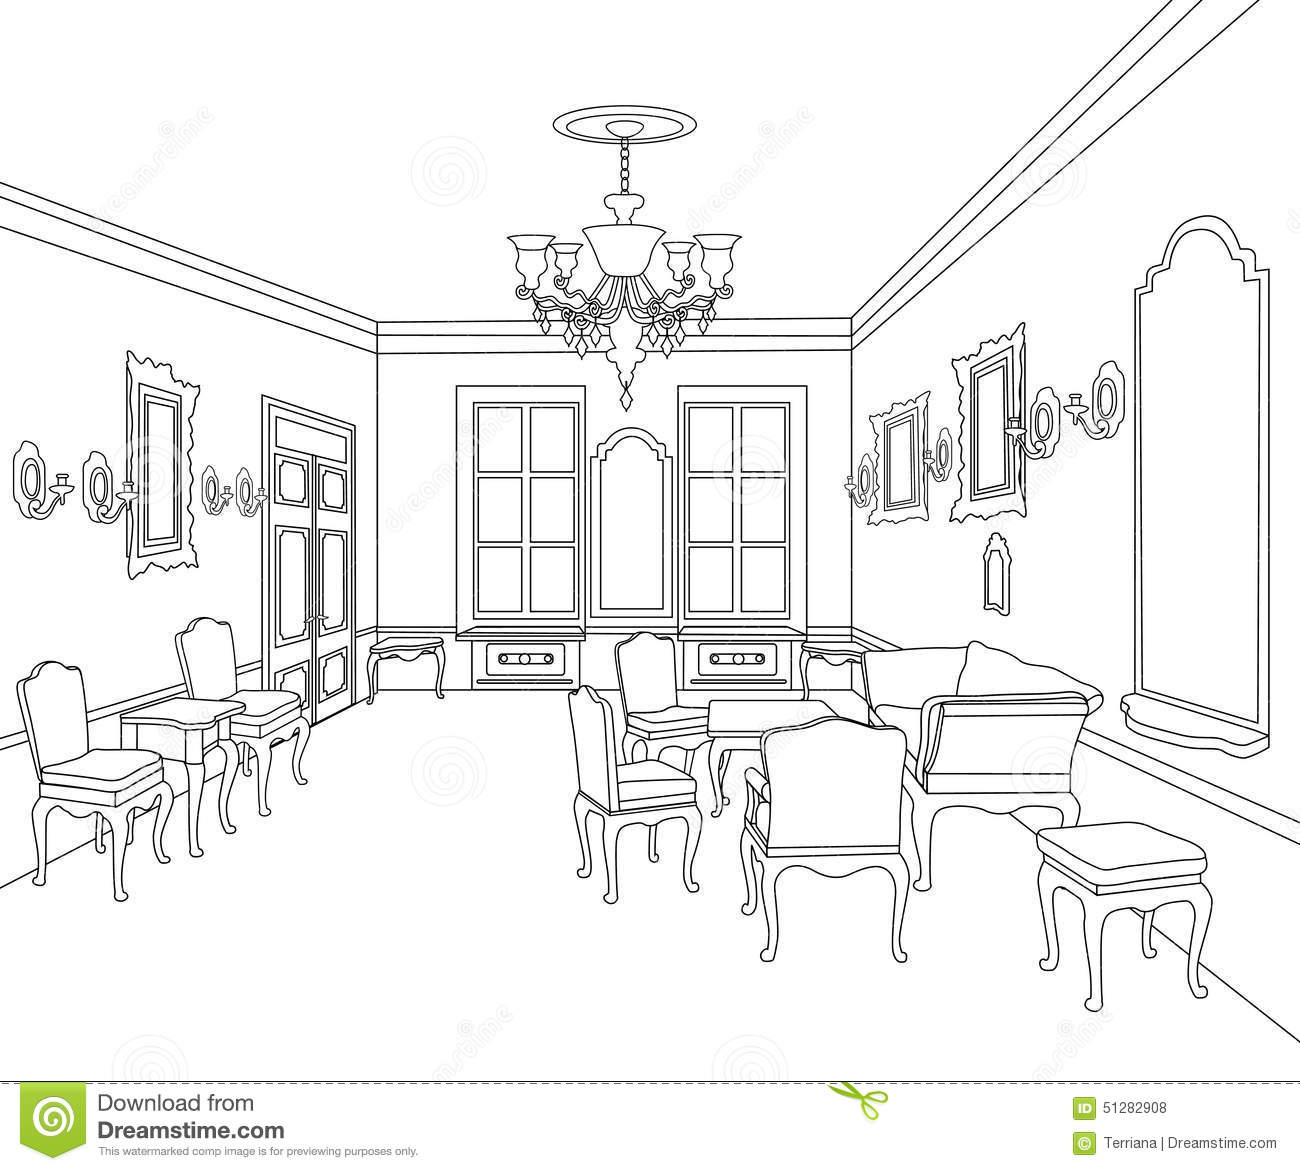 Interior Outline Sketch Furniture Room Blueprint Architectural Set